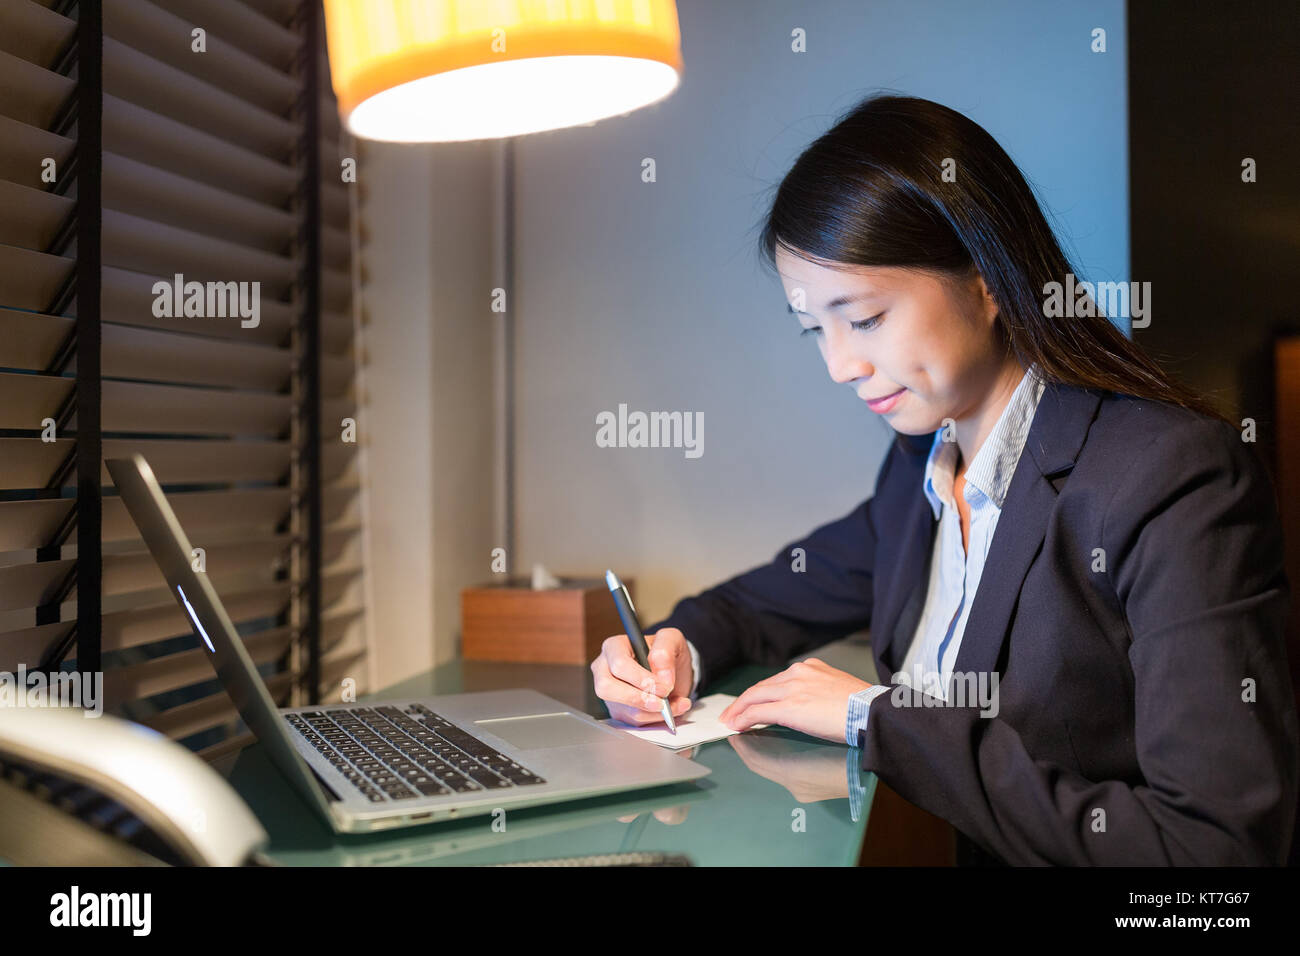 Businesswoman writing on paper with laptop computer - Stock Image